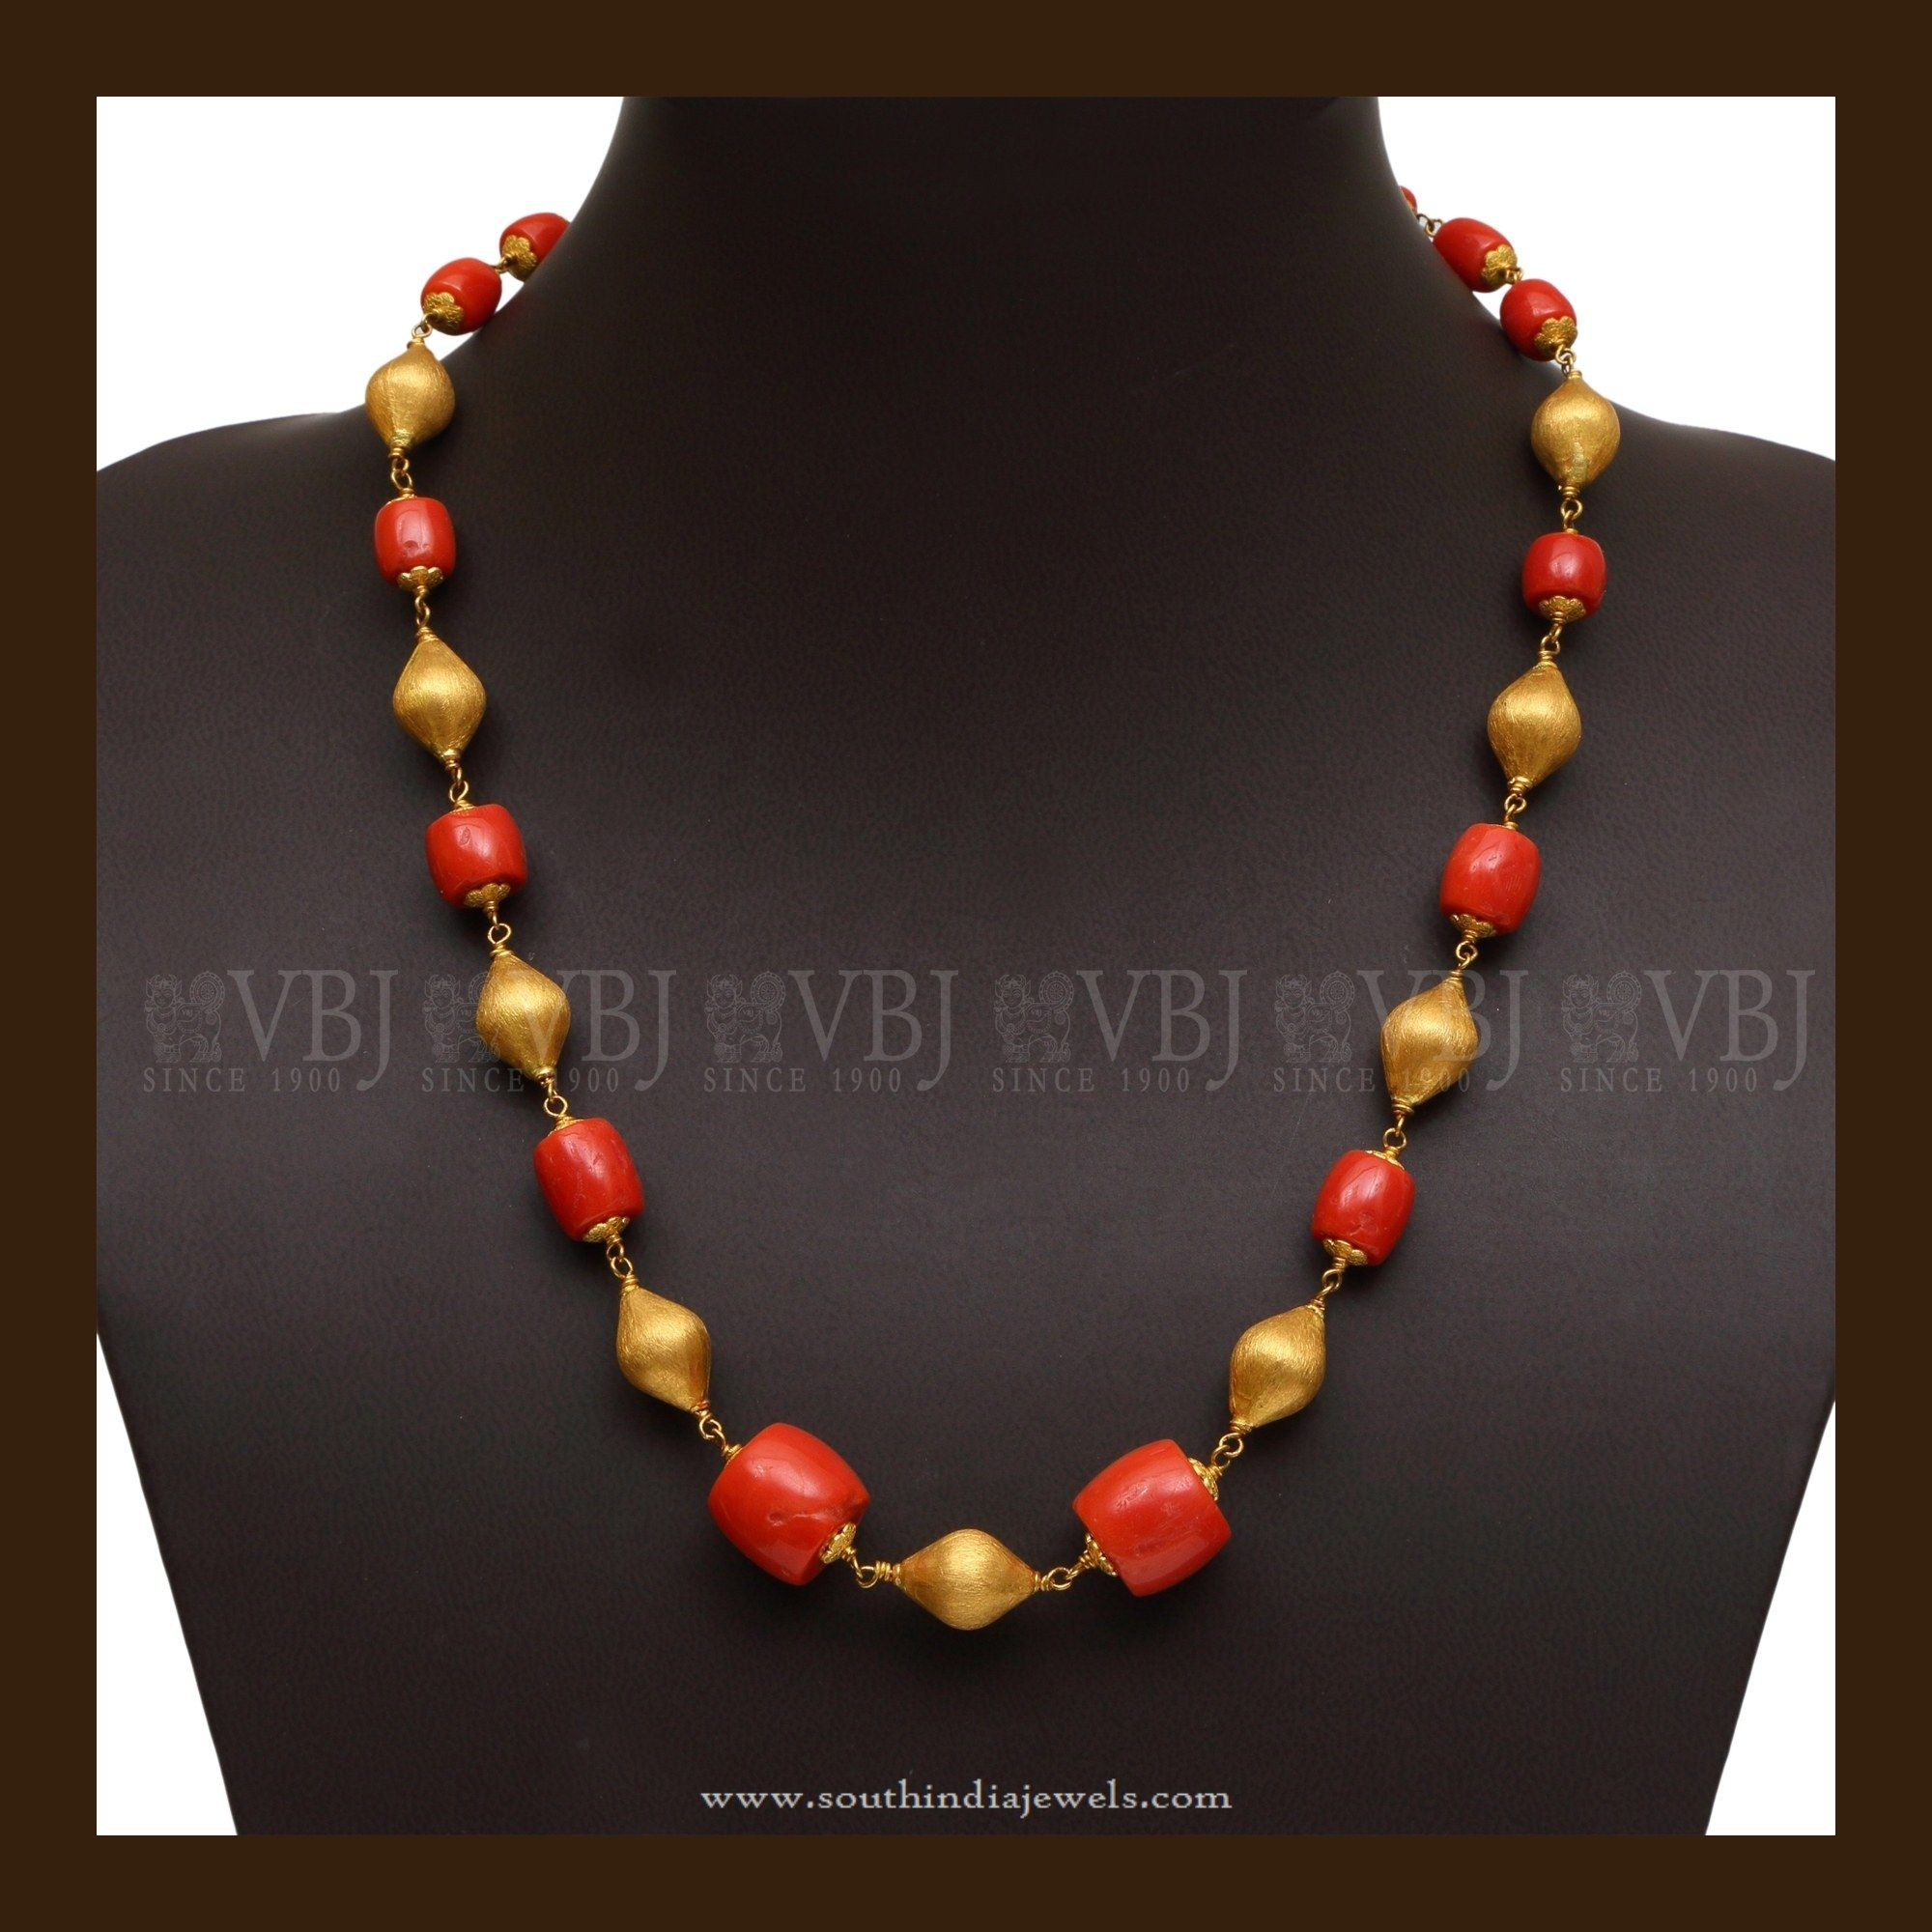 22 carat gold floral designer pendant with multiple beads chain and - 22k Gold Coral Mala Simple Jewelrygold Jewelrynecklace Designssouth Indiagold Beadsbead Necklacescoralbangleschains